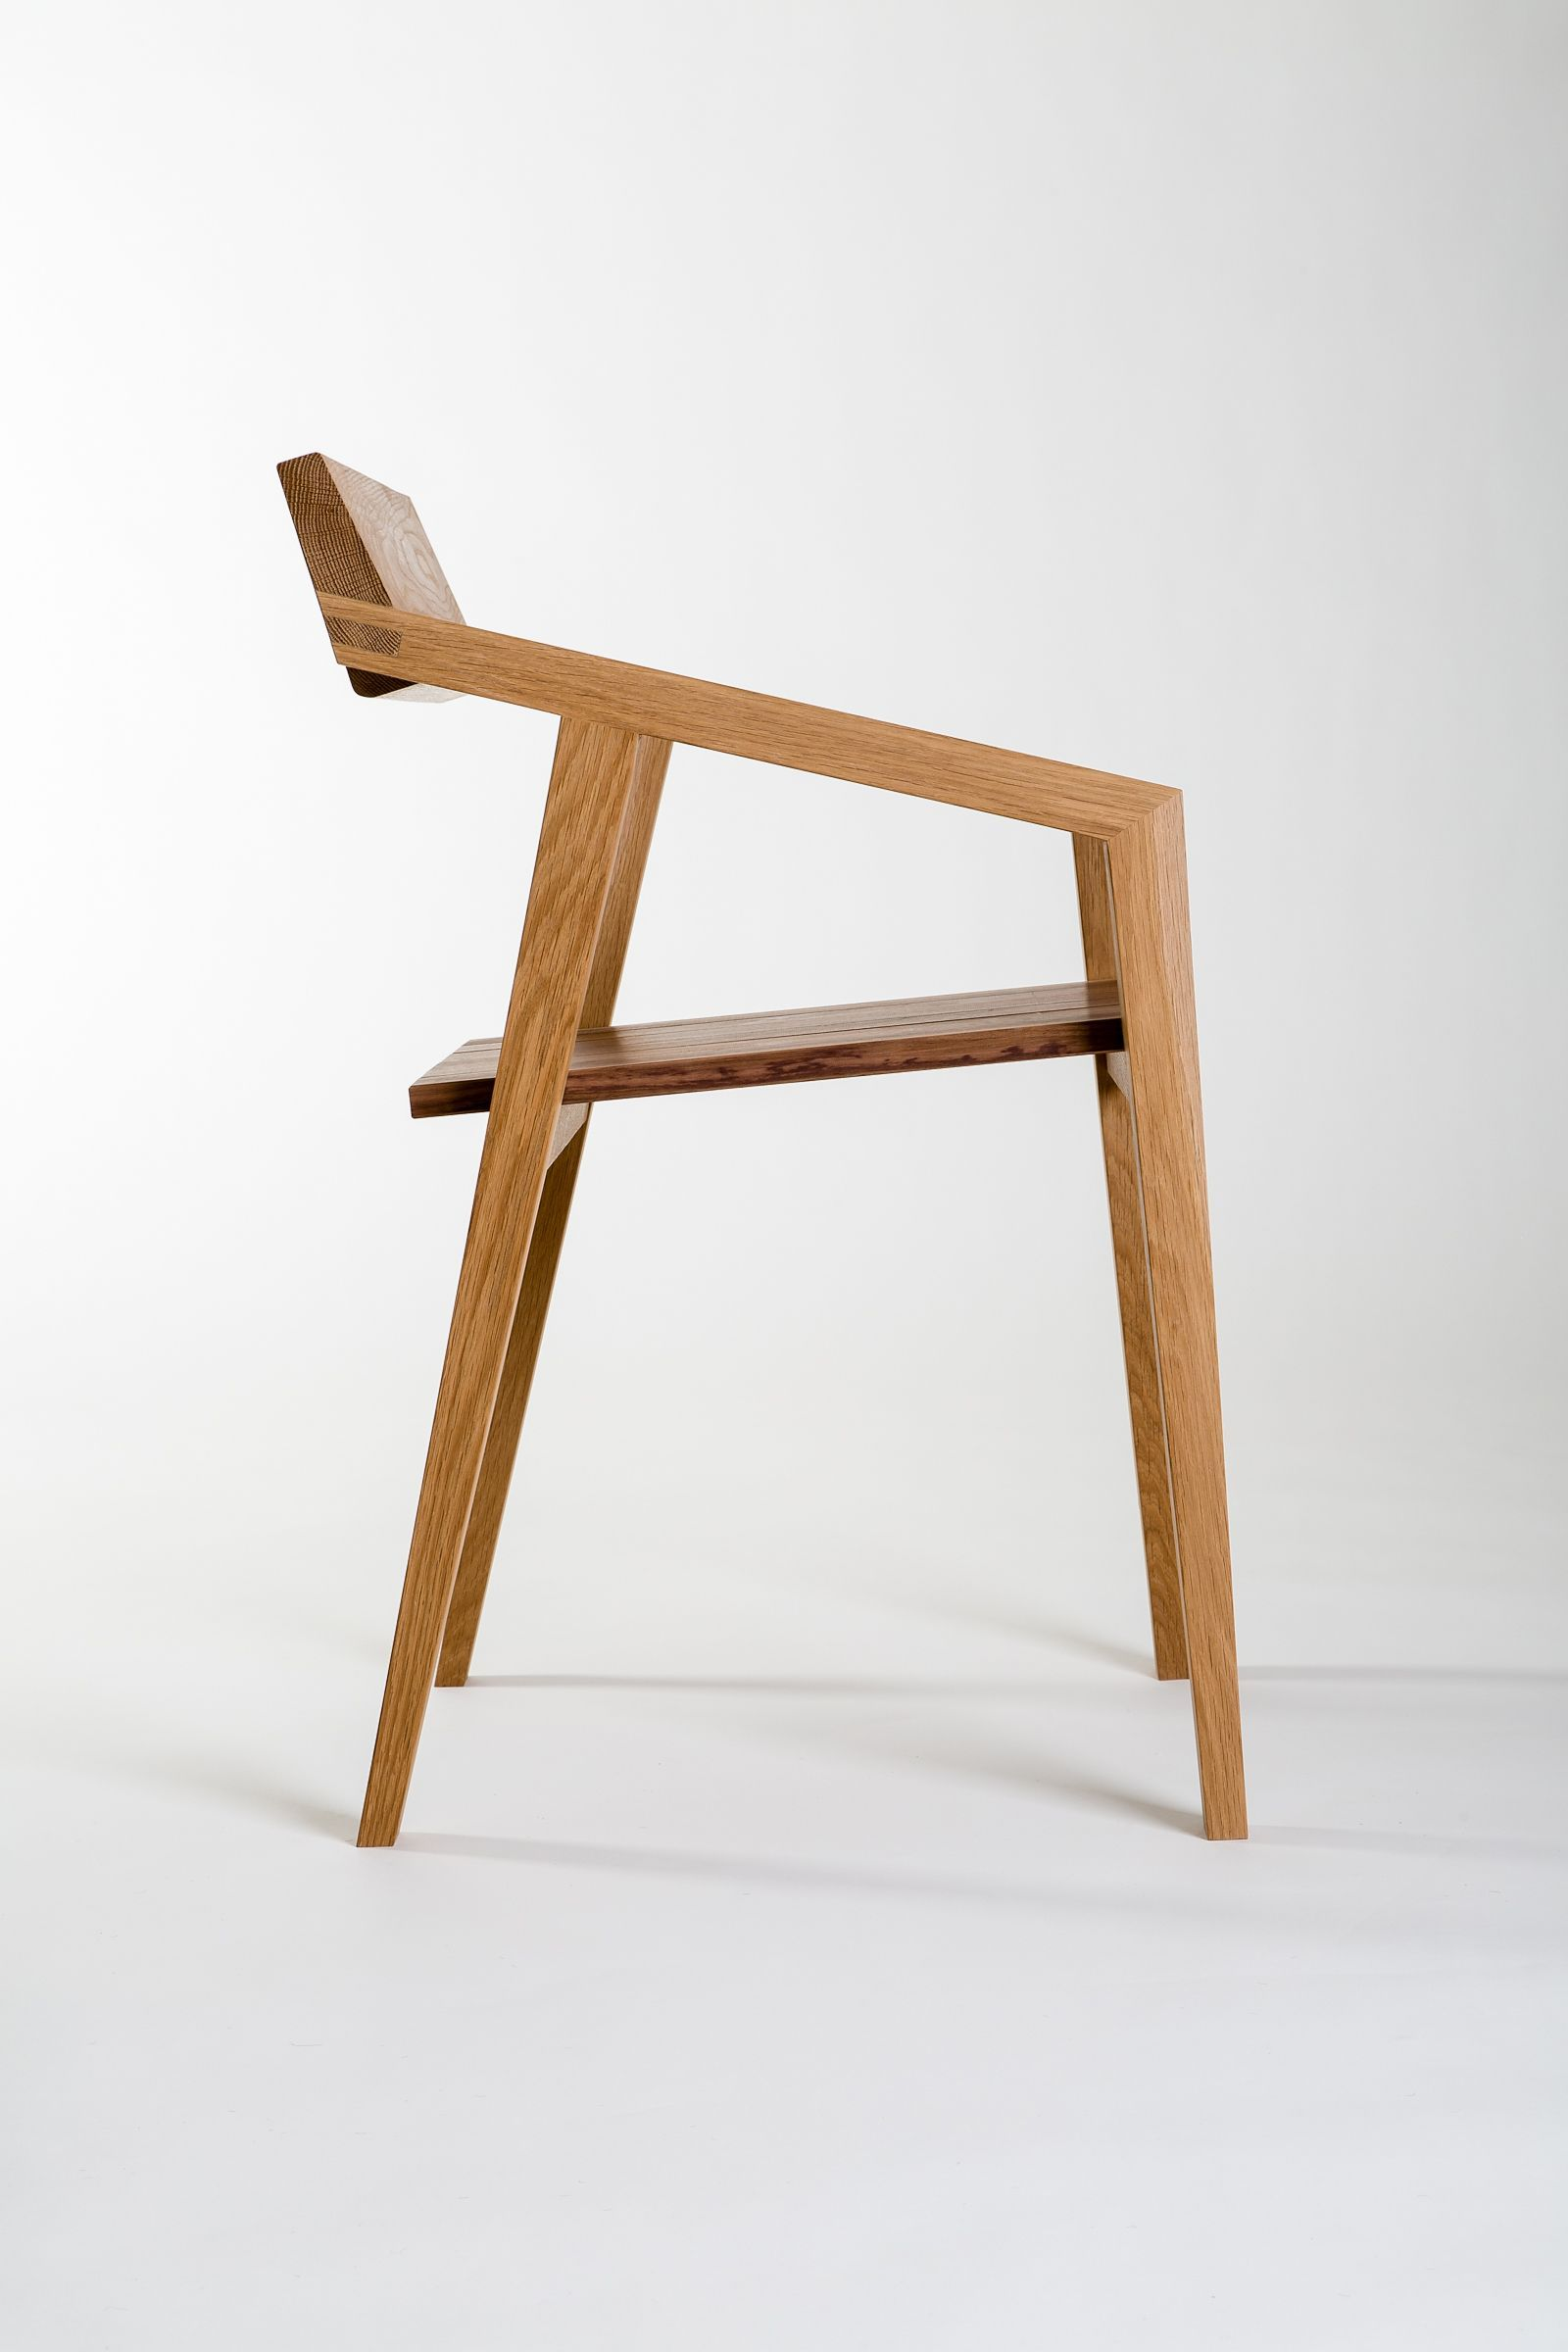 Profile Photos Richard Ivey In 2020 Chair Wood Chair Wooden Chair